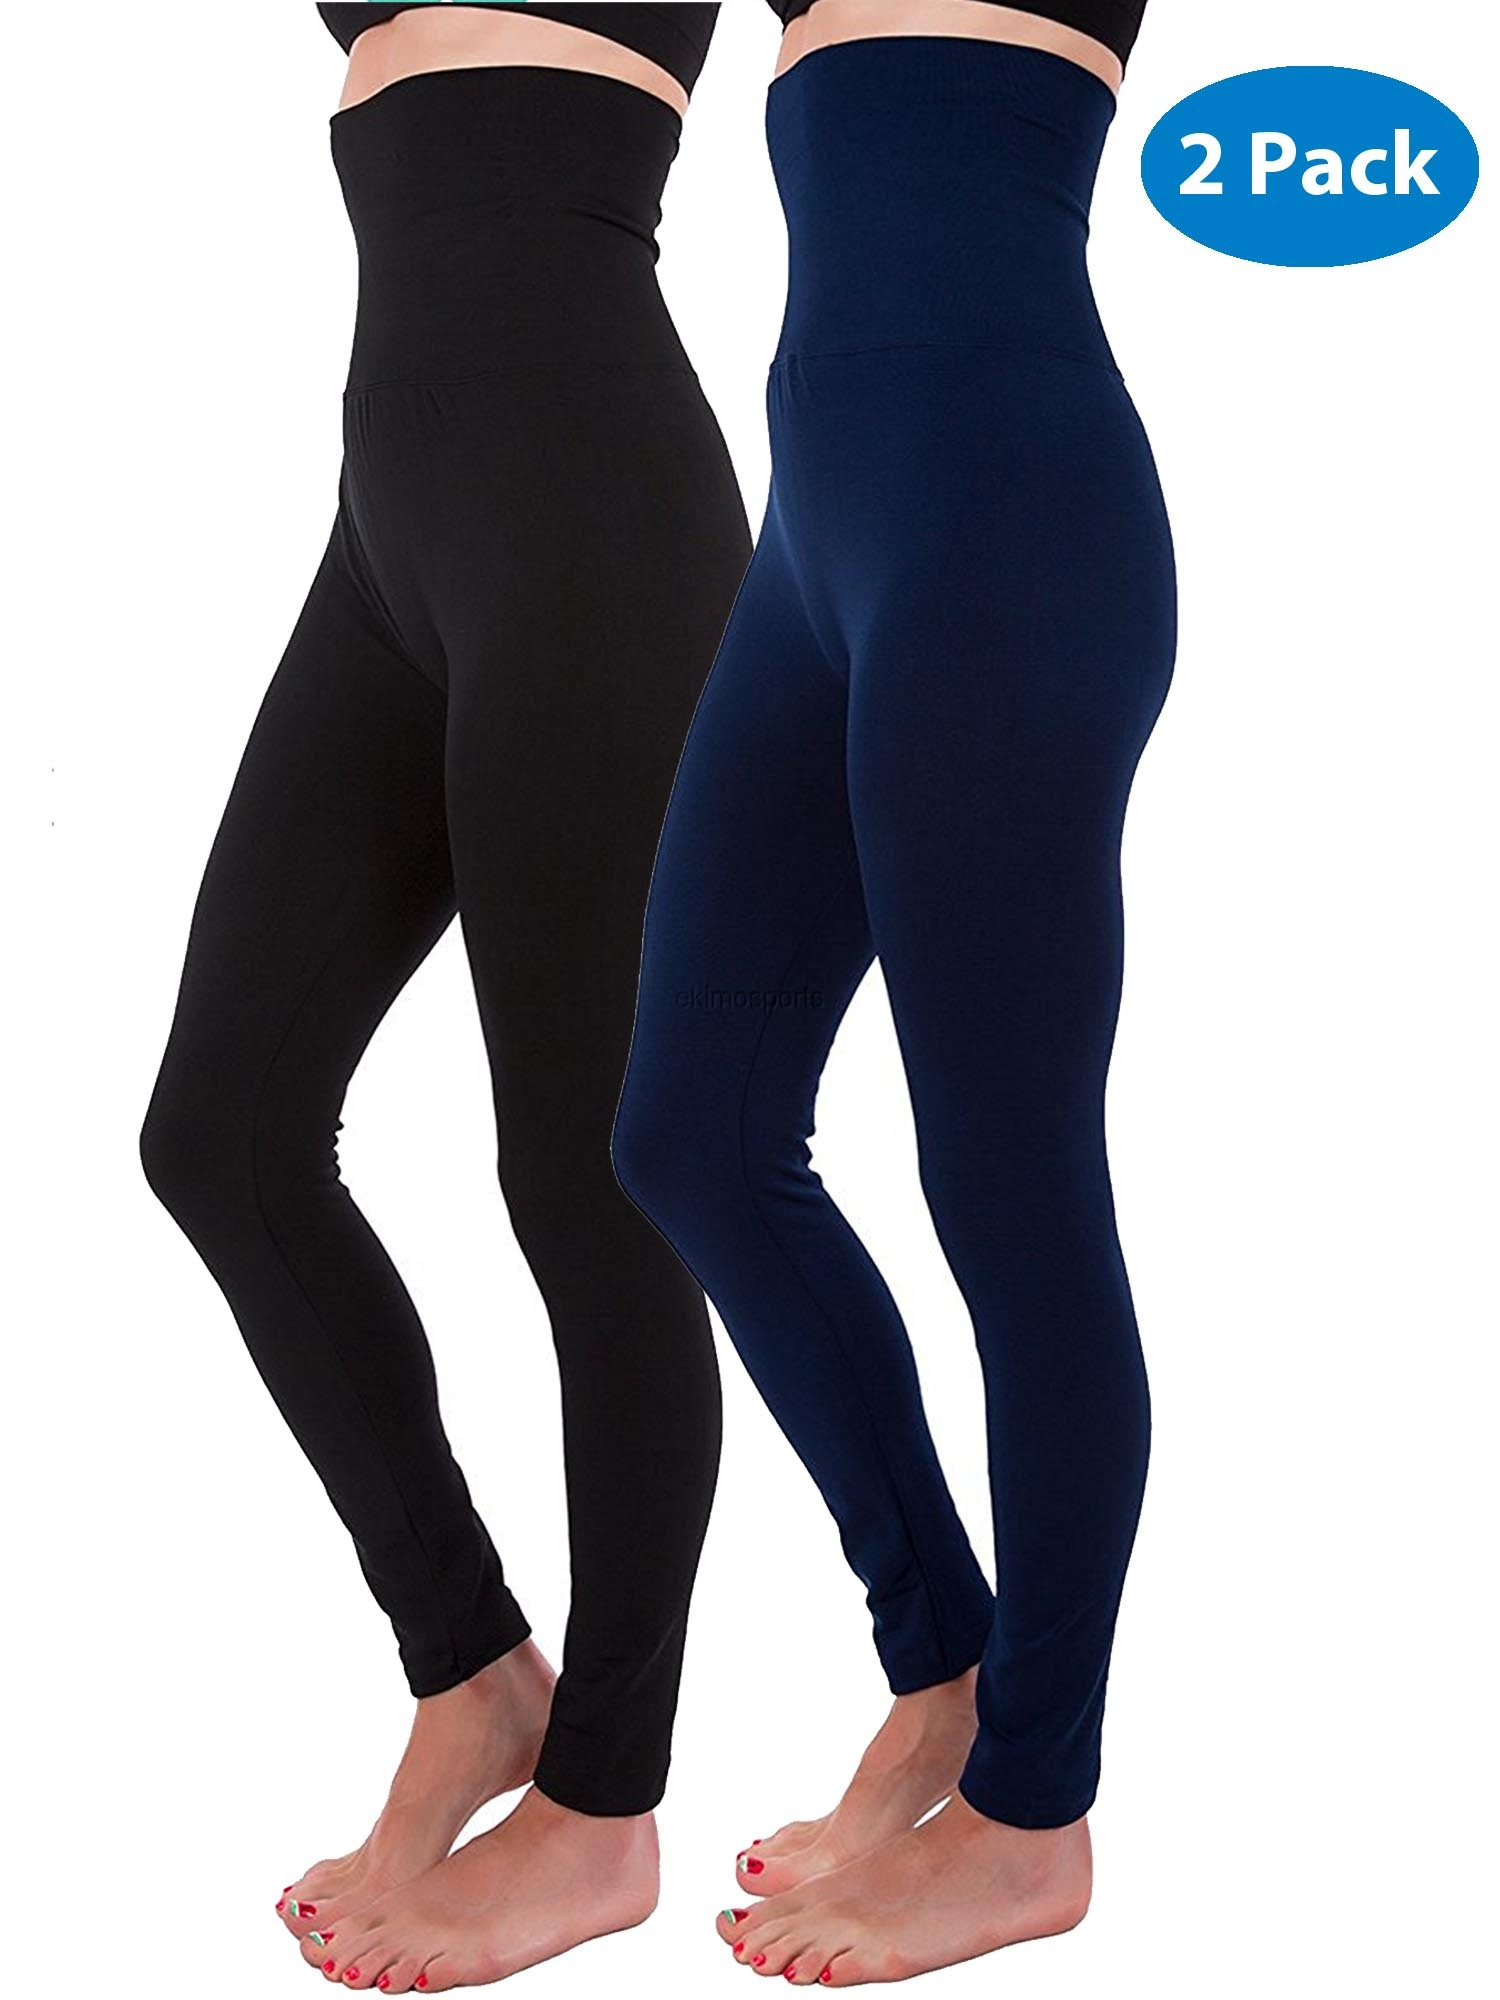 61769b7a21a89 N&J Kuda-Moda - 2-Pack High Waist Tummy Control Full Length Legging  Compression Top Pants Fleece Lined - Walmart.com